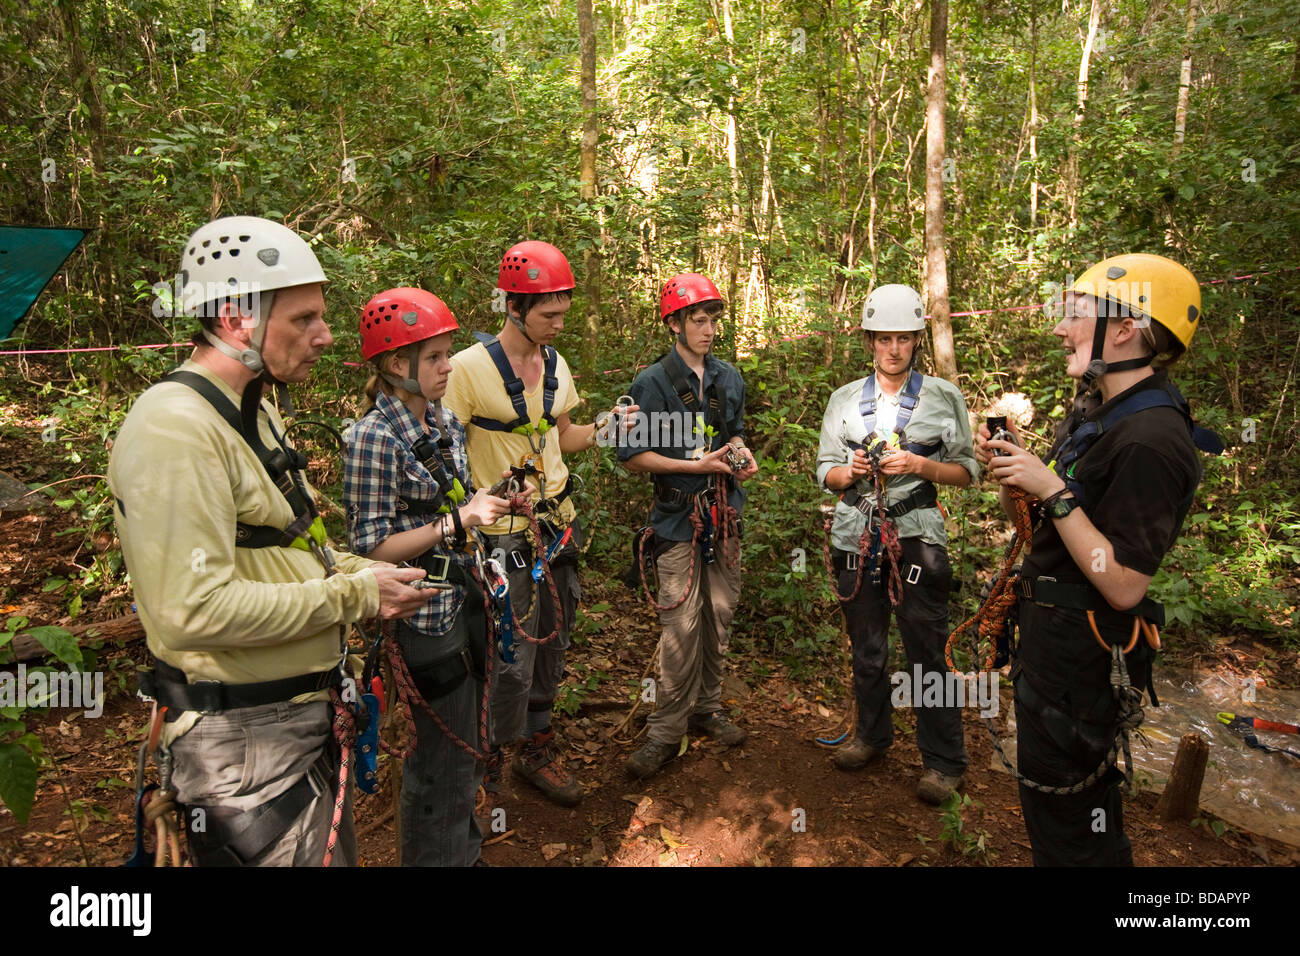 Indonesia Sulawesi Operation Wallacea Lambusango forest reserve teaching canopy access group & Indonesia Sulawesi Operation Wallacea Lambusango forest reserve ...